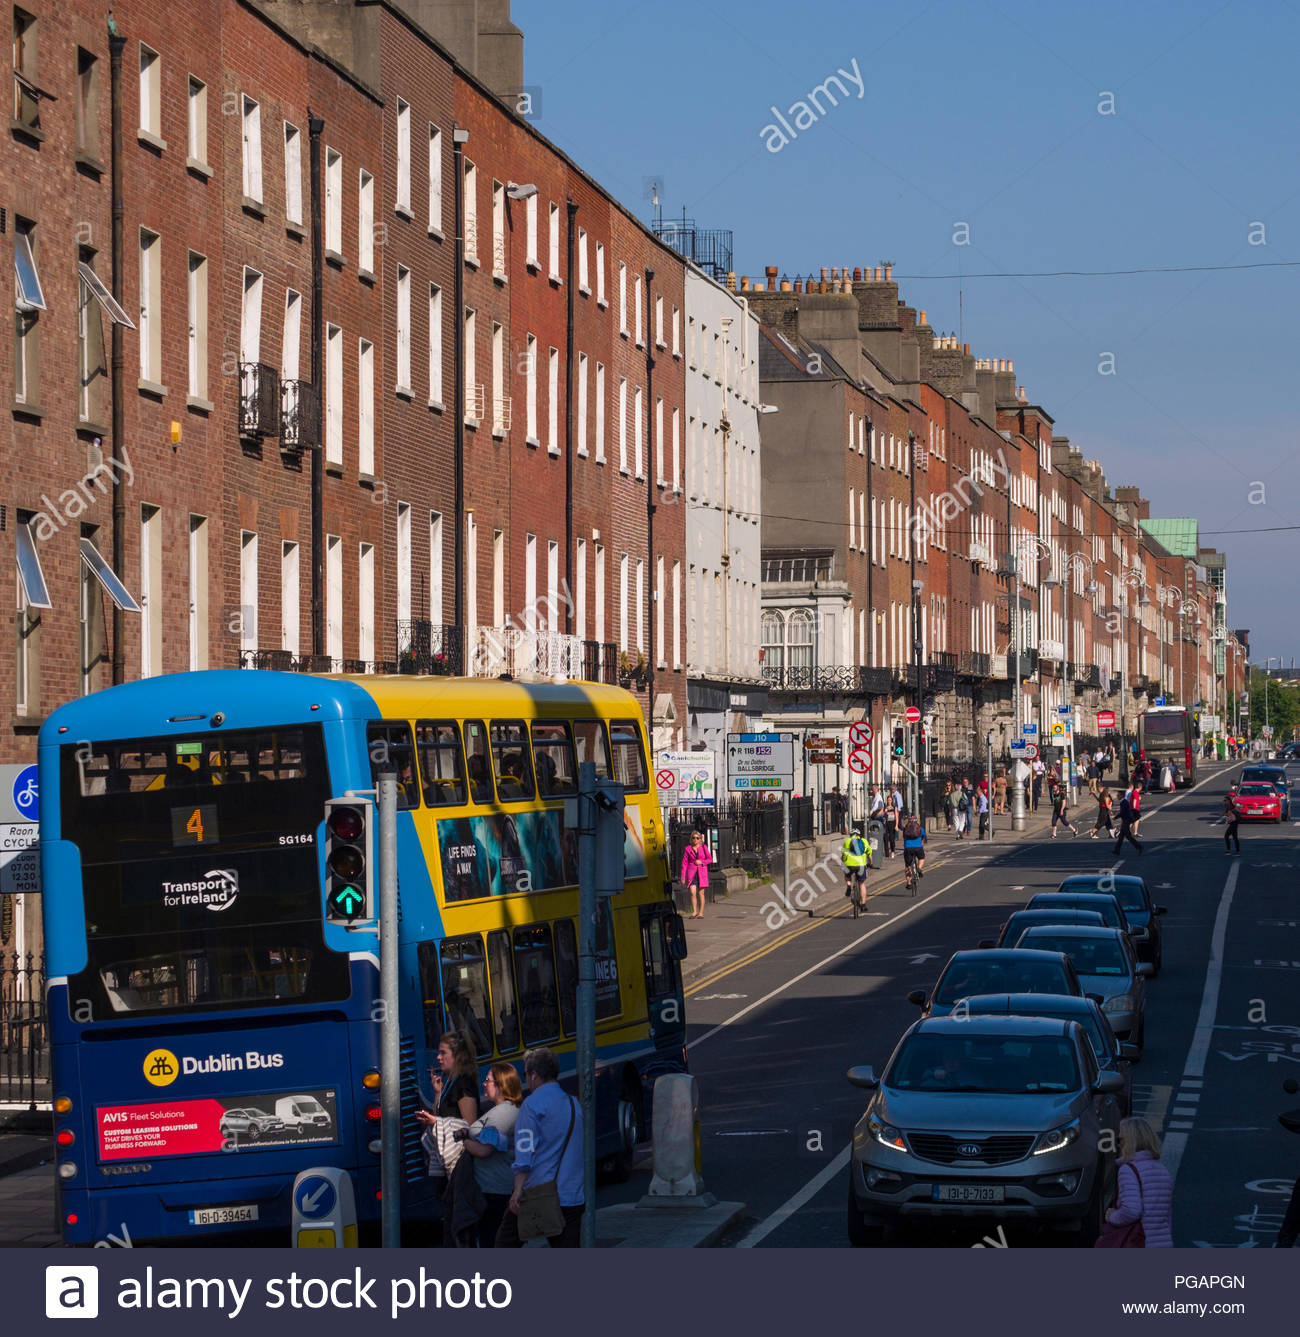 Motor coaches and automobile traffic on Clare Street, Dublin, Leinster, Ireland - Stock Image